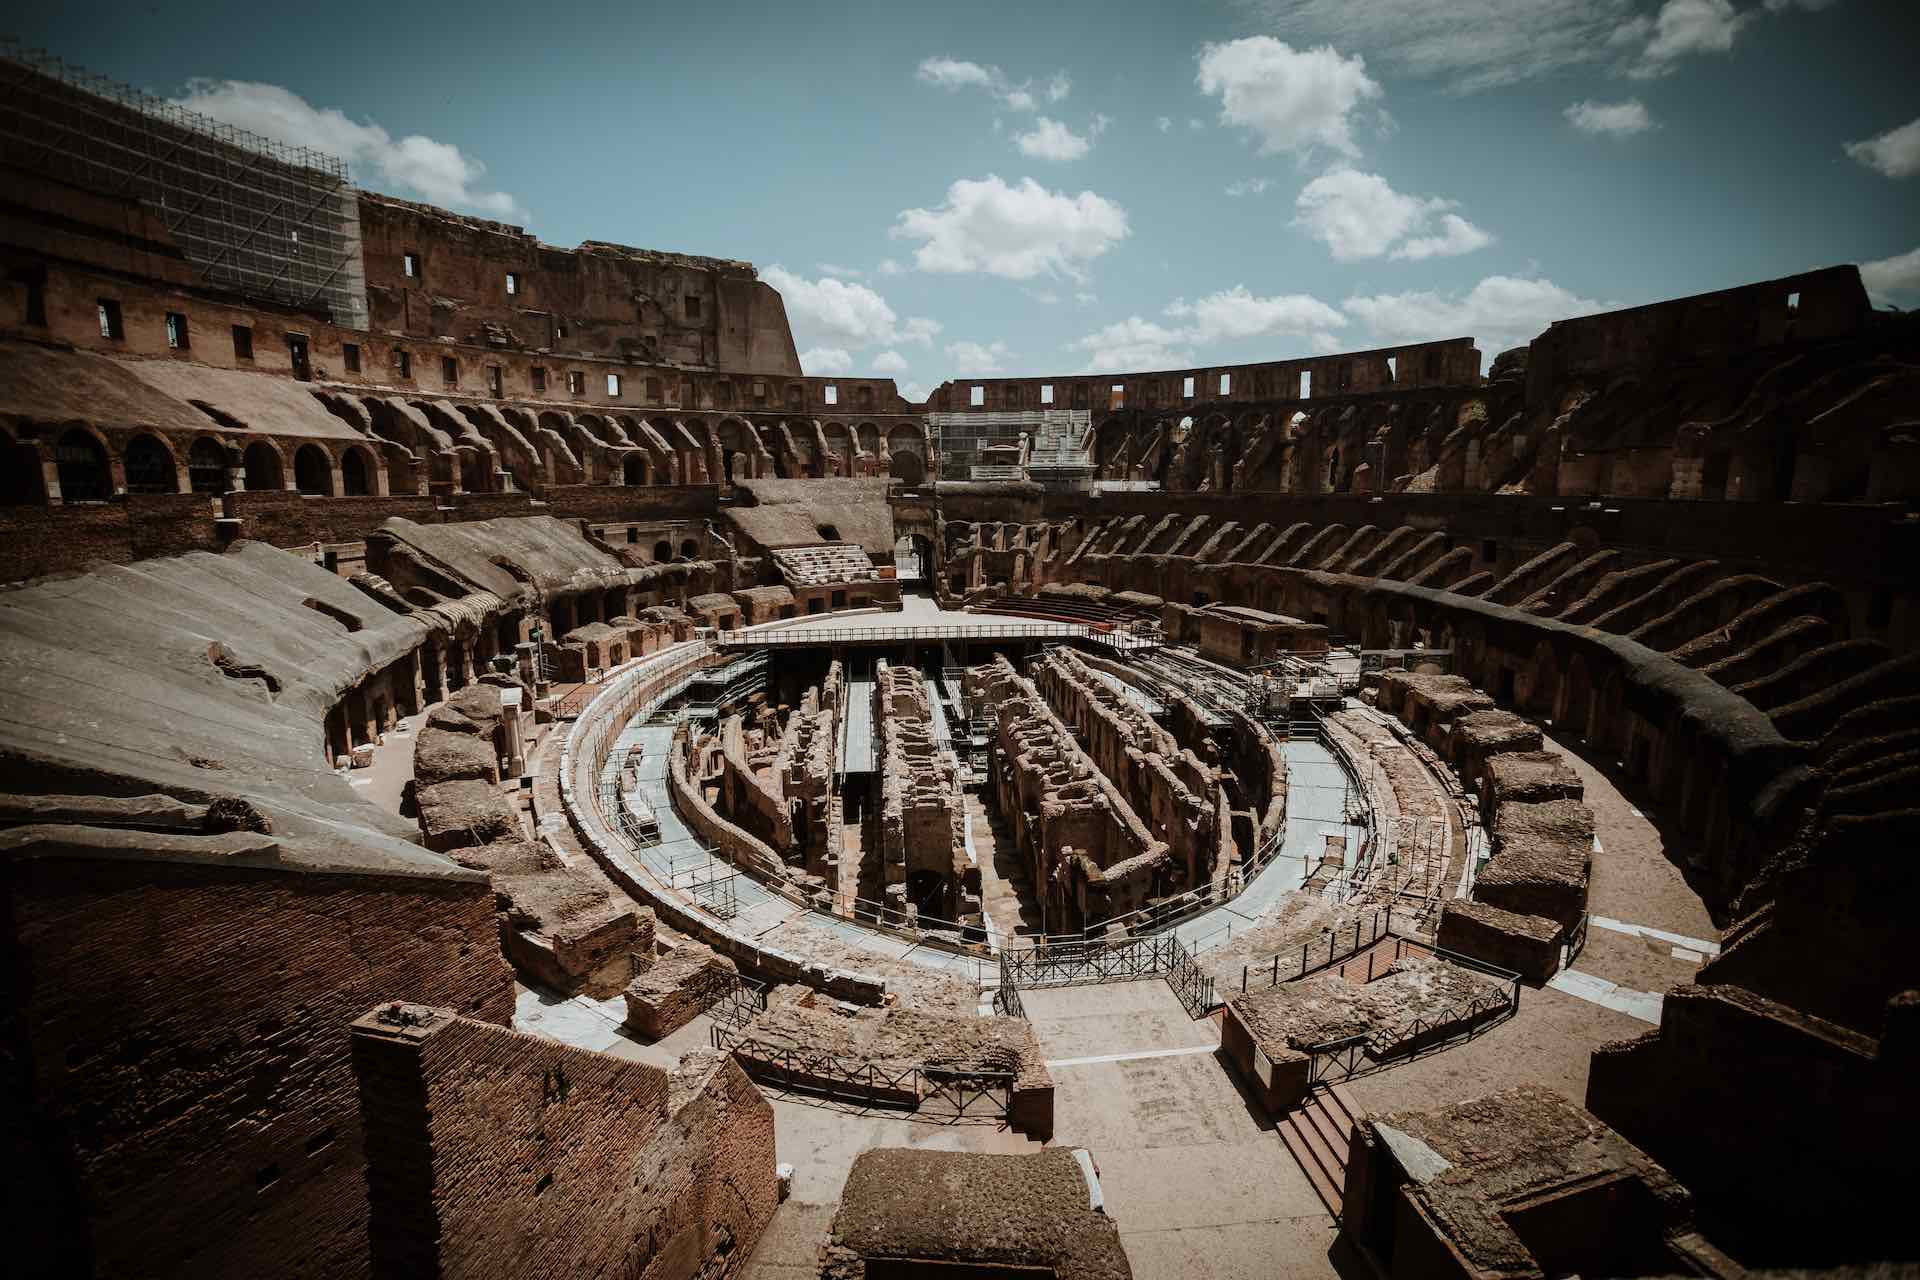 Shot of the Colosseum arena taken from the upper levels